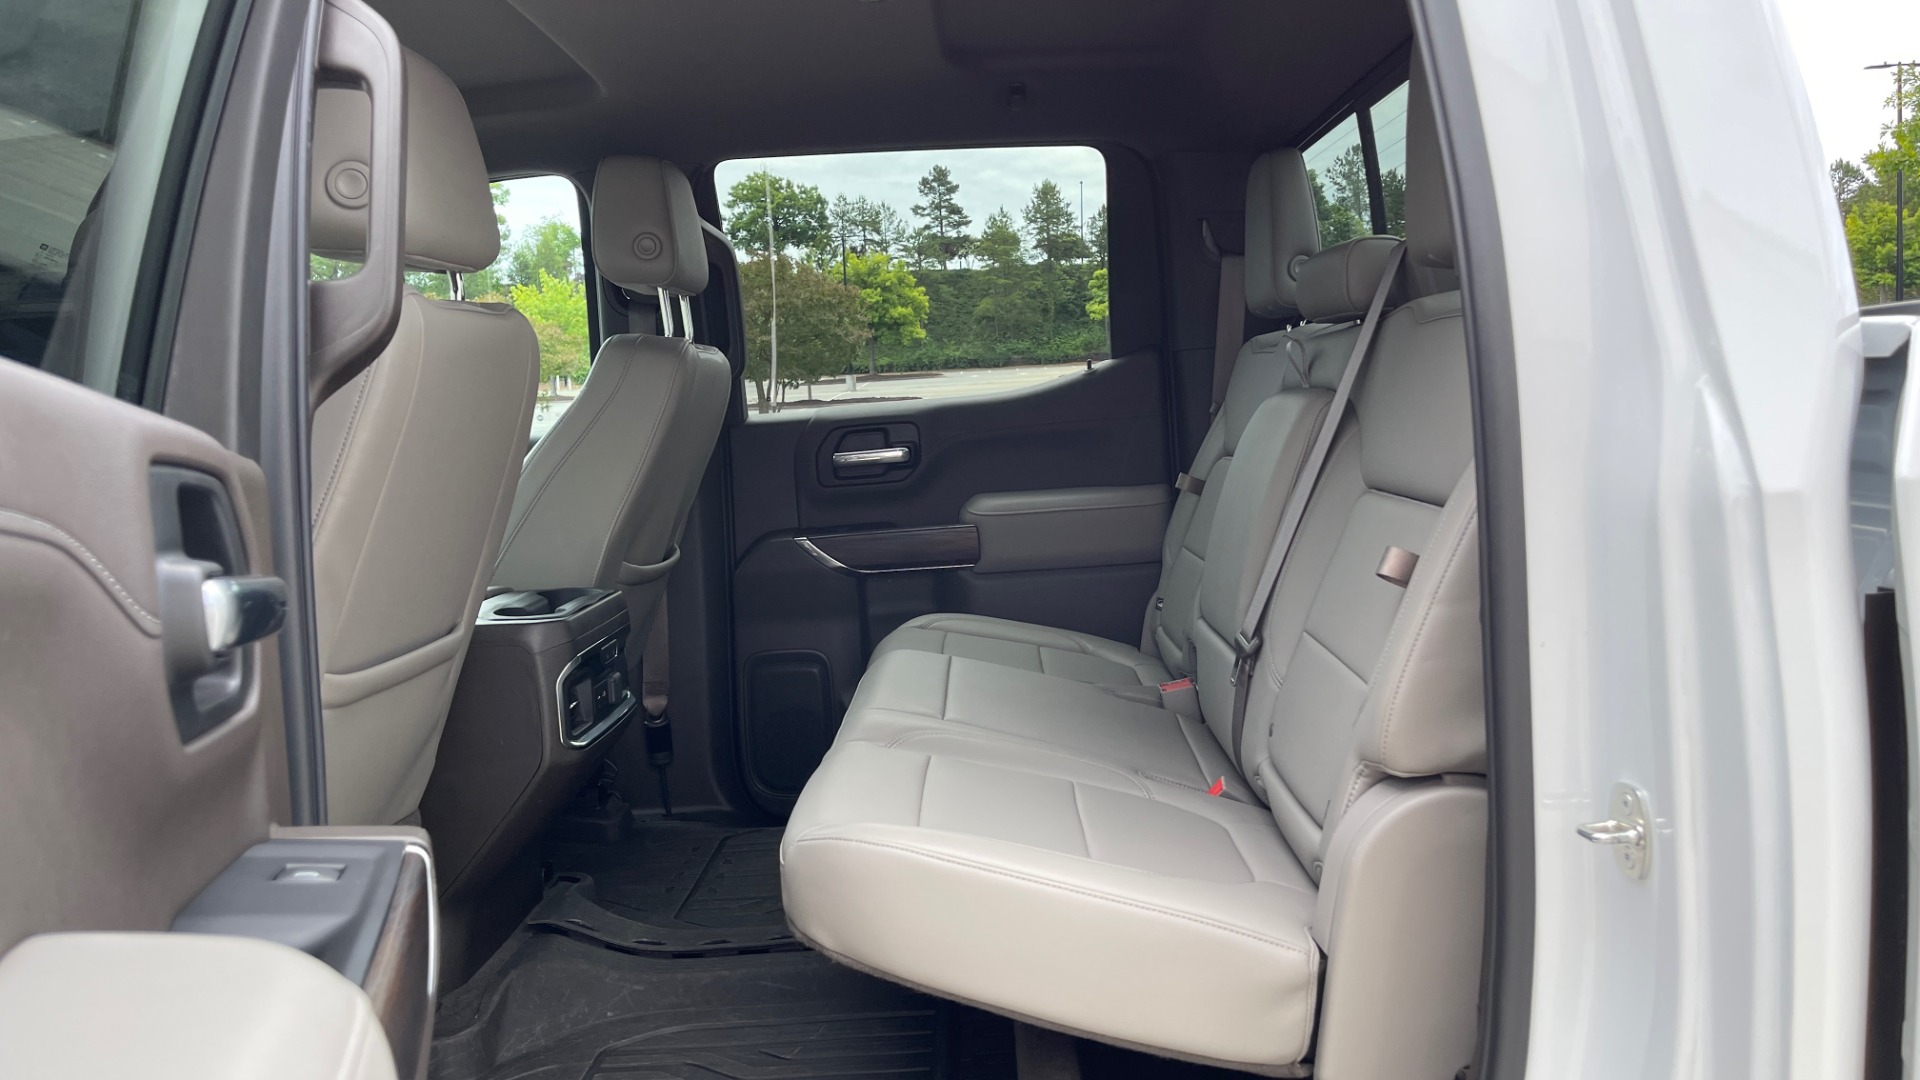 Used 2019 GMC SIERRA 1500 SLT 4X4 CREWCAB / 5.3L V8 / 8-SPD AUTO / NAV / BOSE / REARVIEW for sale $49,999 at Formula Imports in Charlotte NC 28227 63